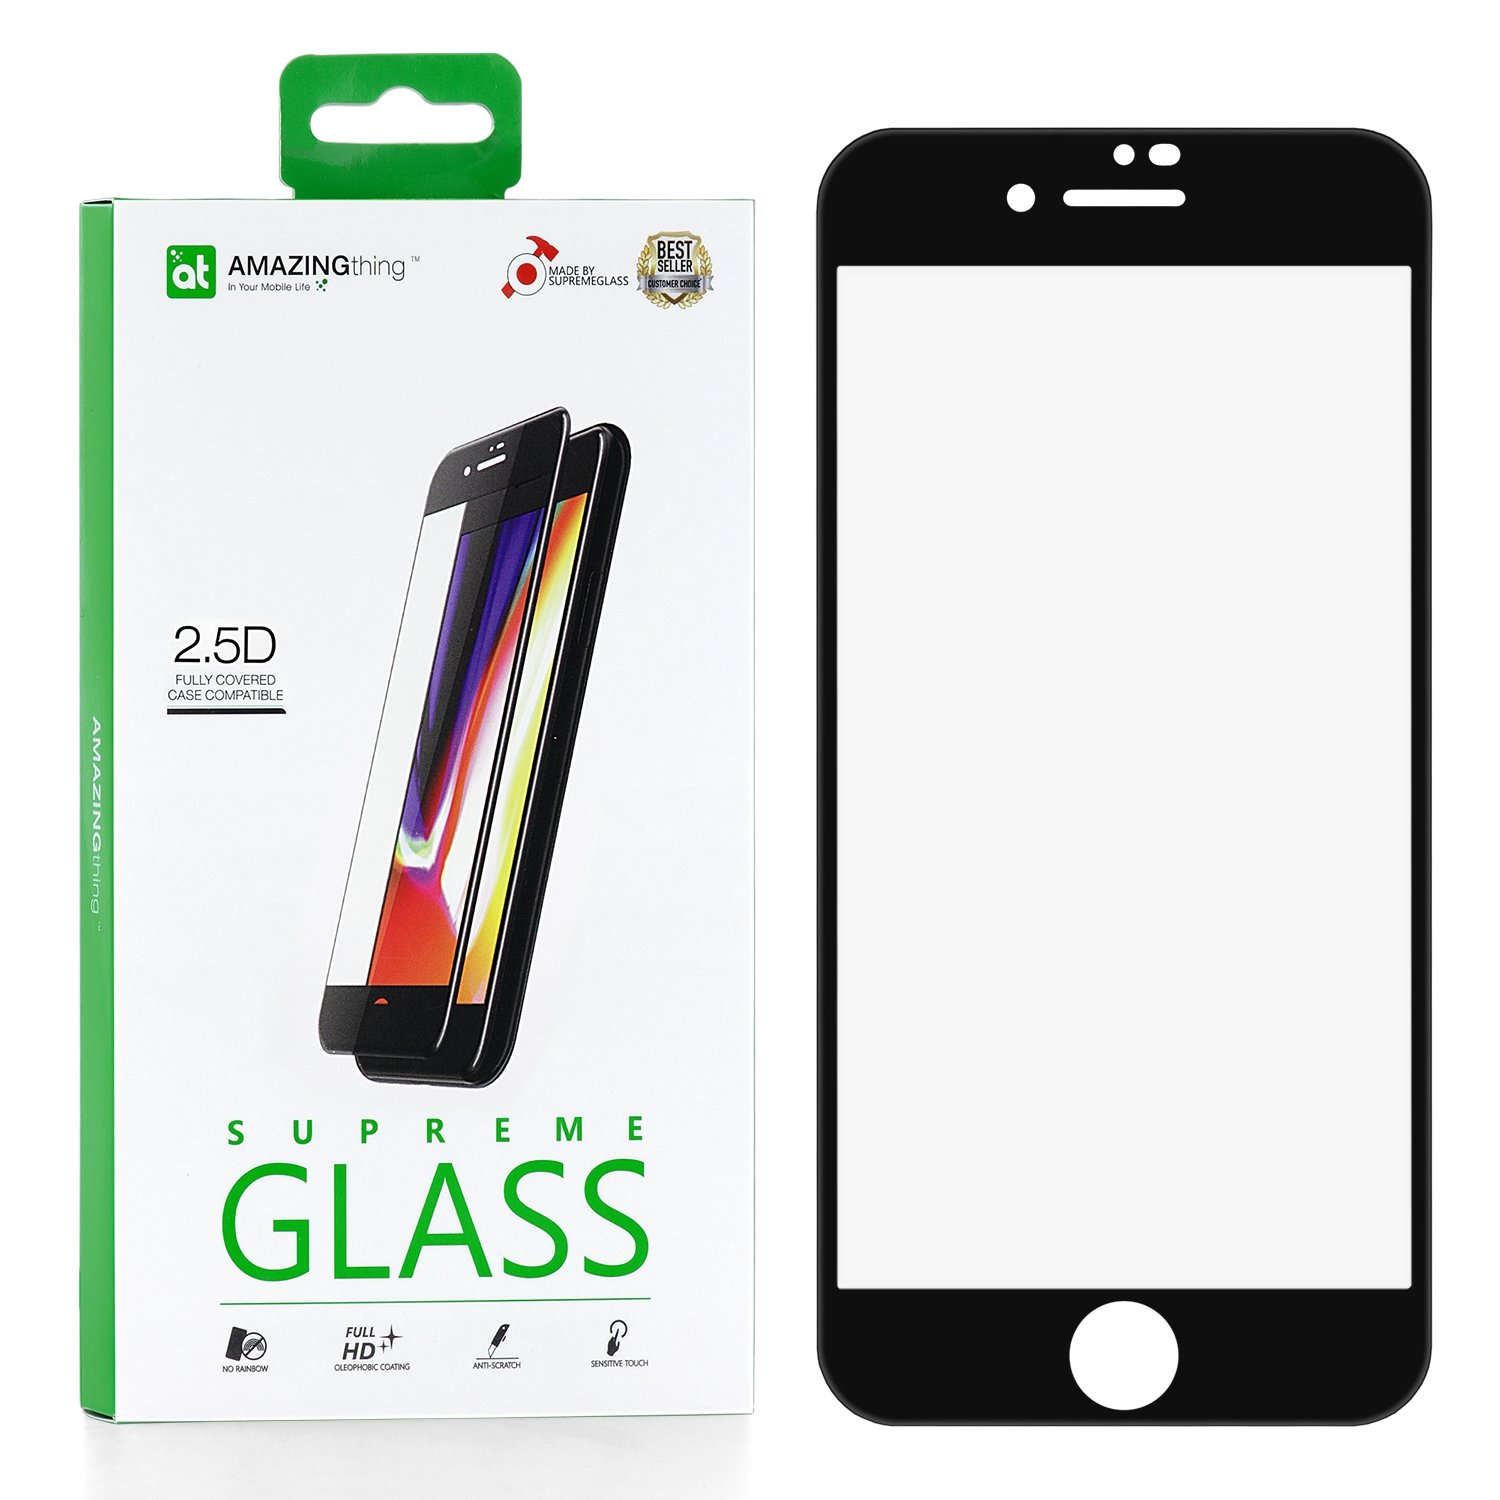 Защитное стекло AMAZINGthing SupremeGlass Full Glue Black 0.33mm для Apple iPhone 7